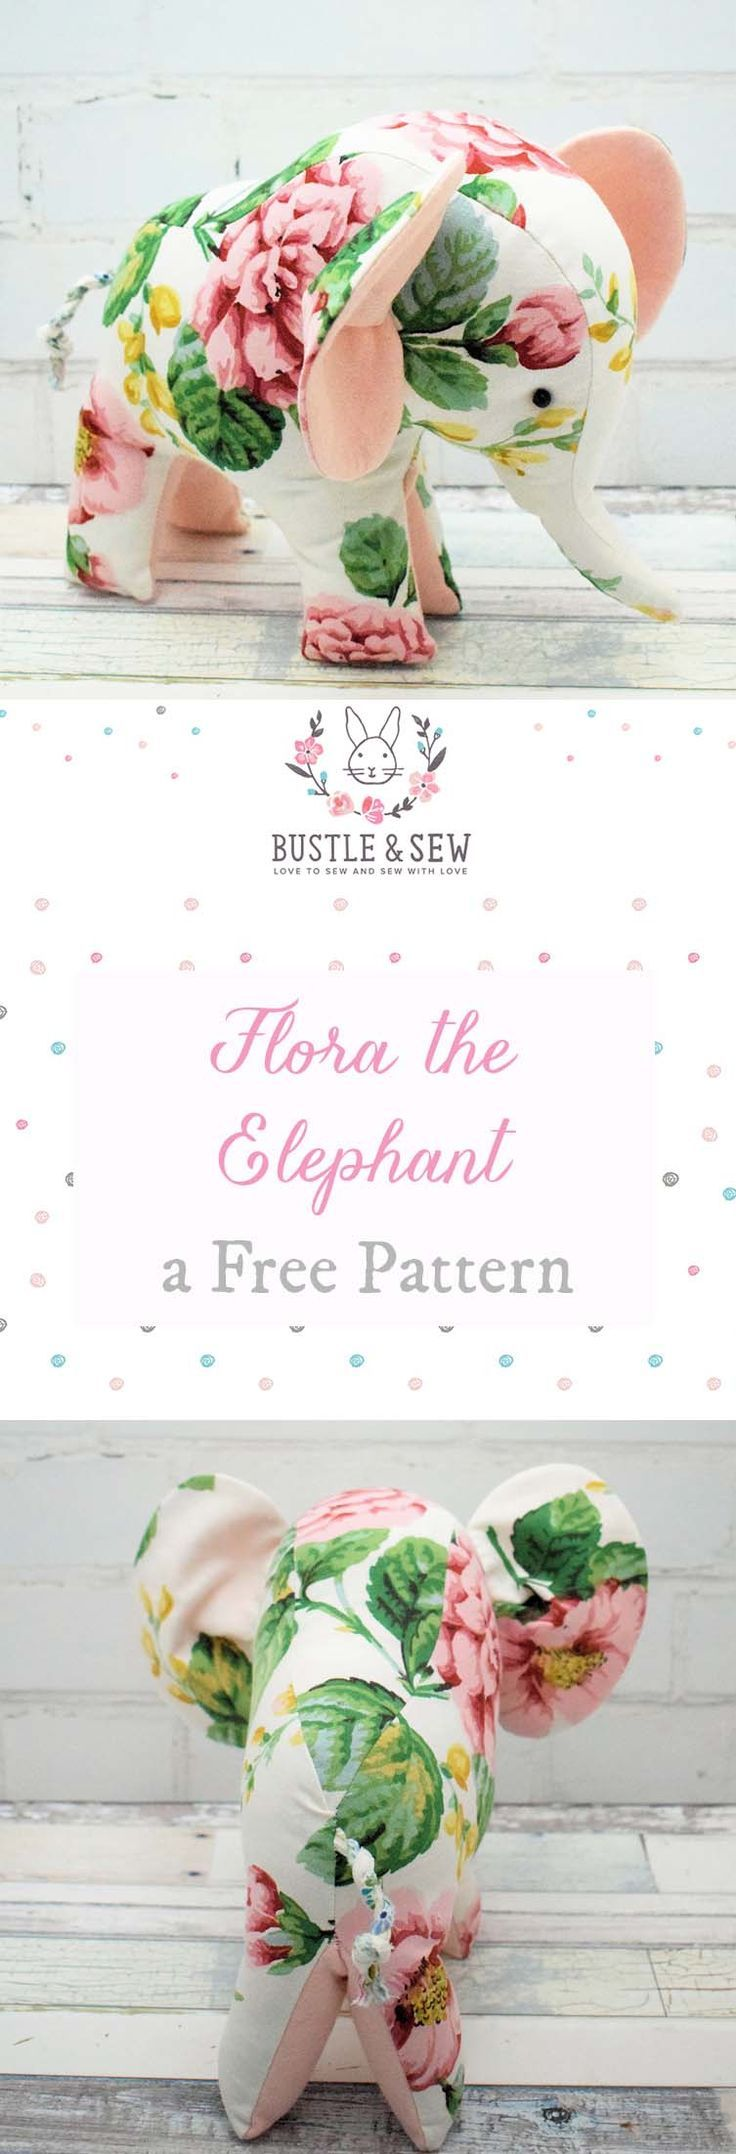 Free Flora the Elephant pattern adorable